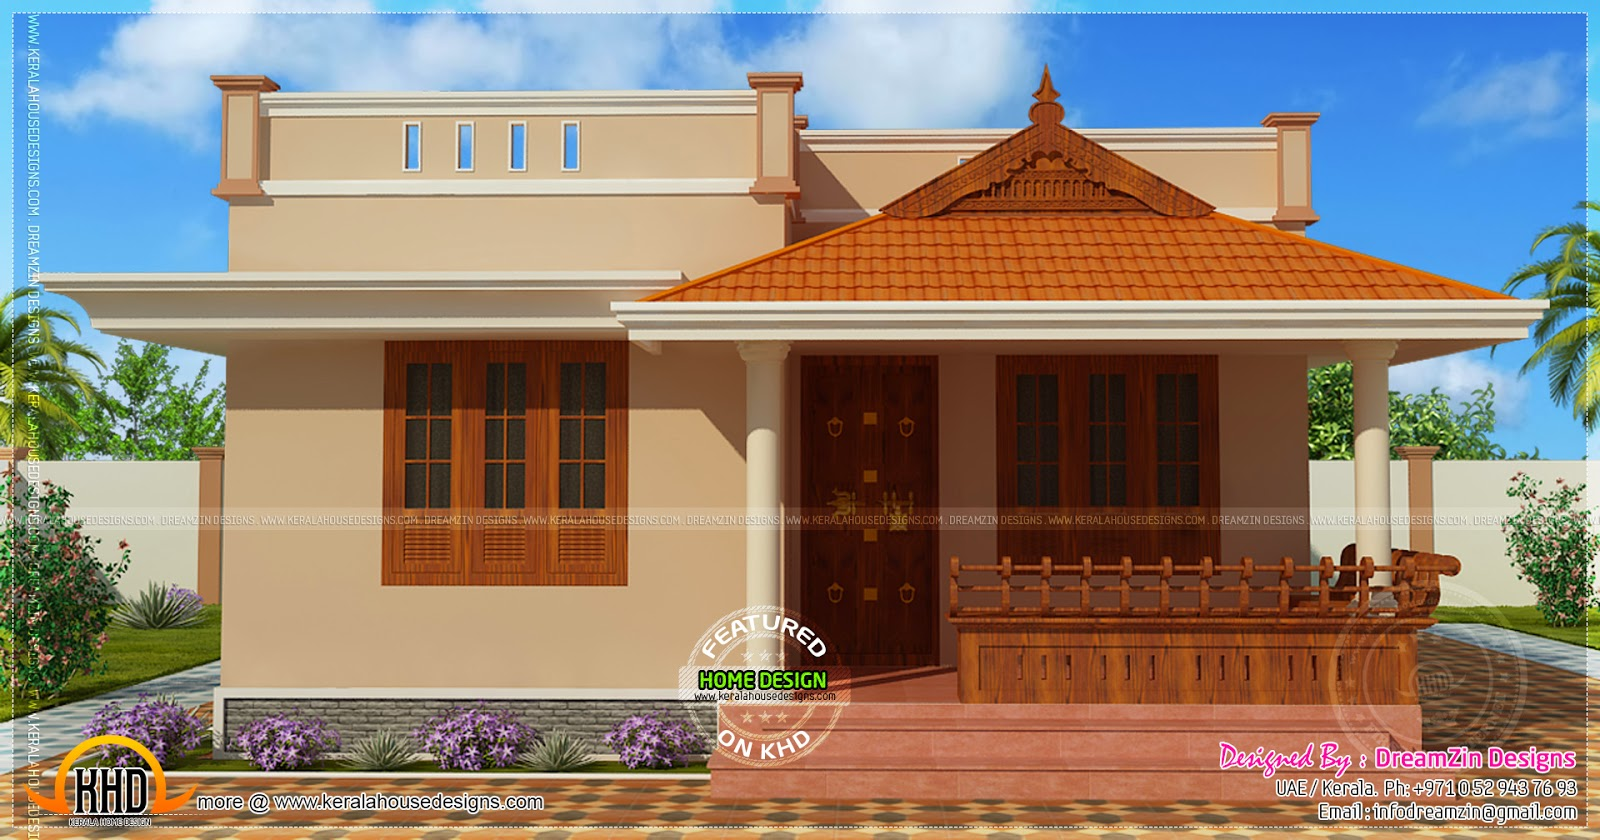 Siddu buzz online kerala home design for Home designs kerala photos